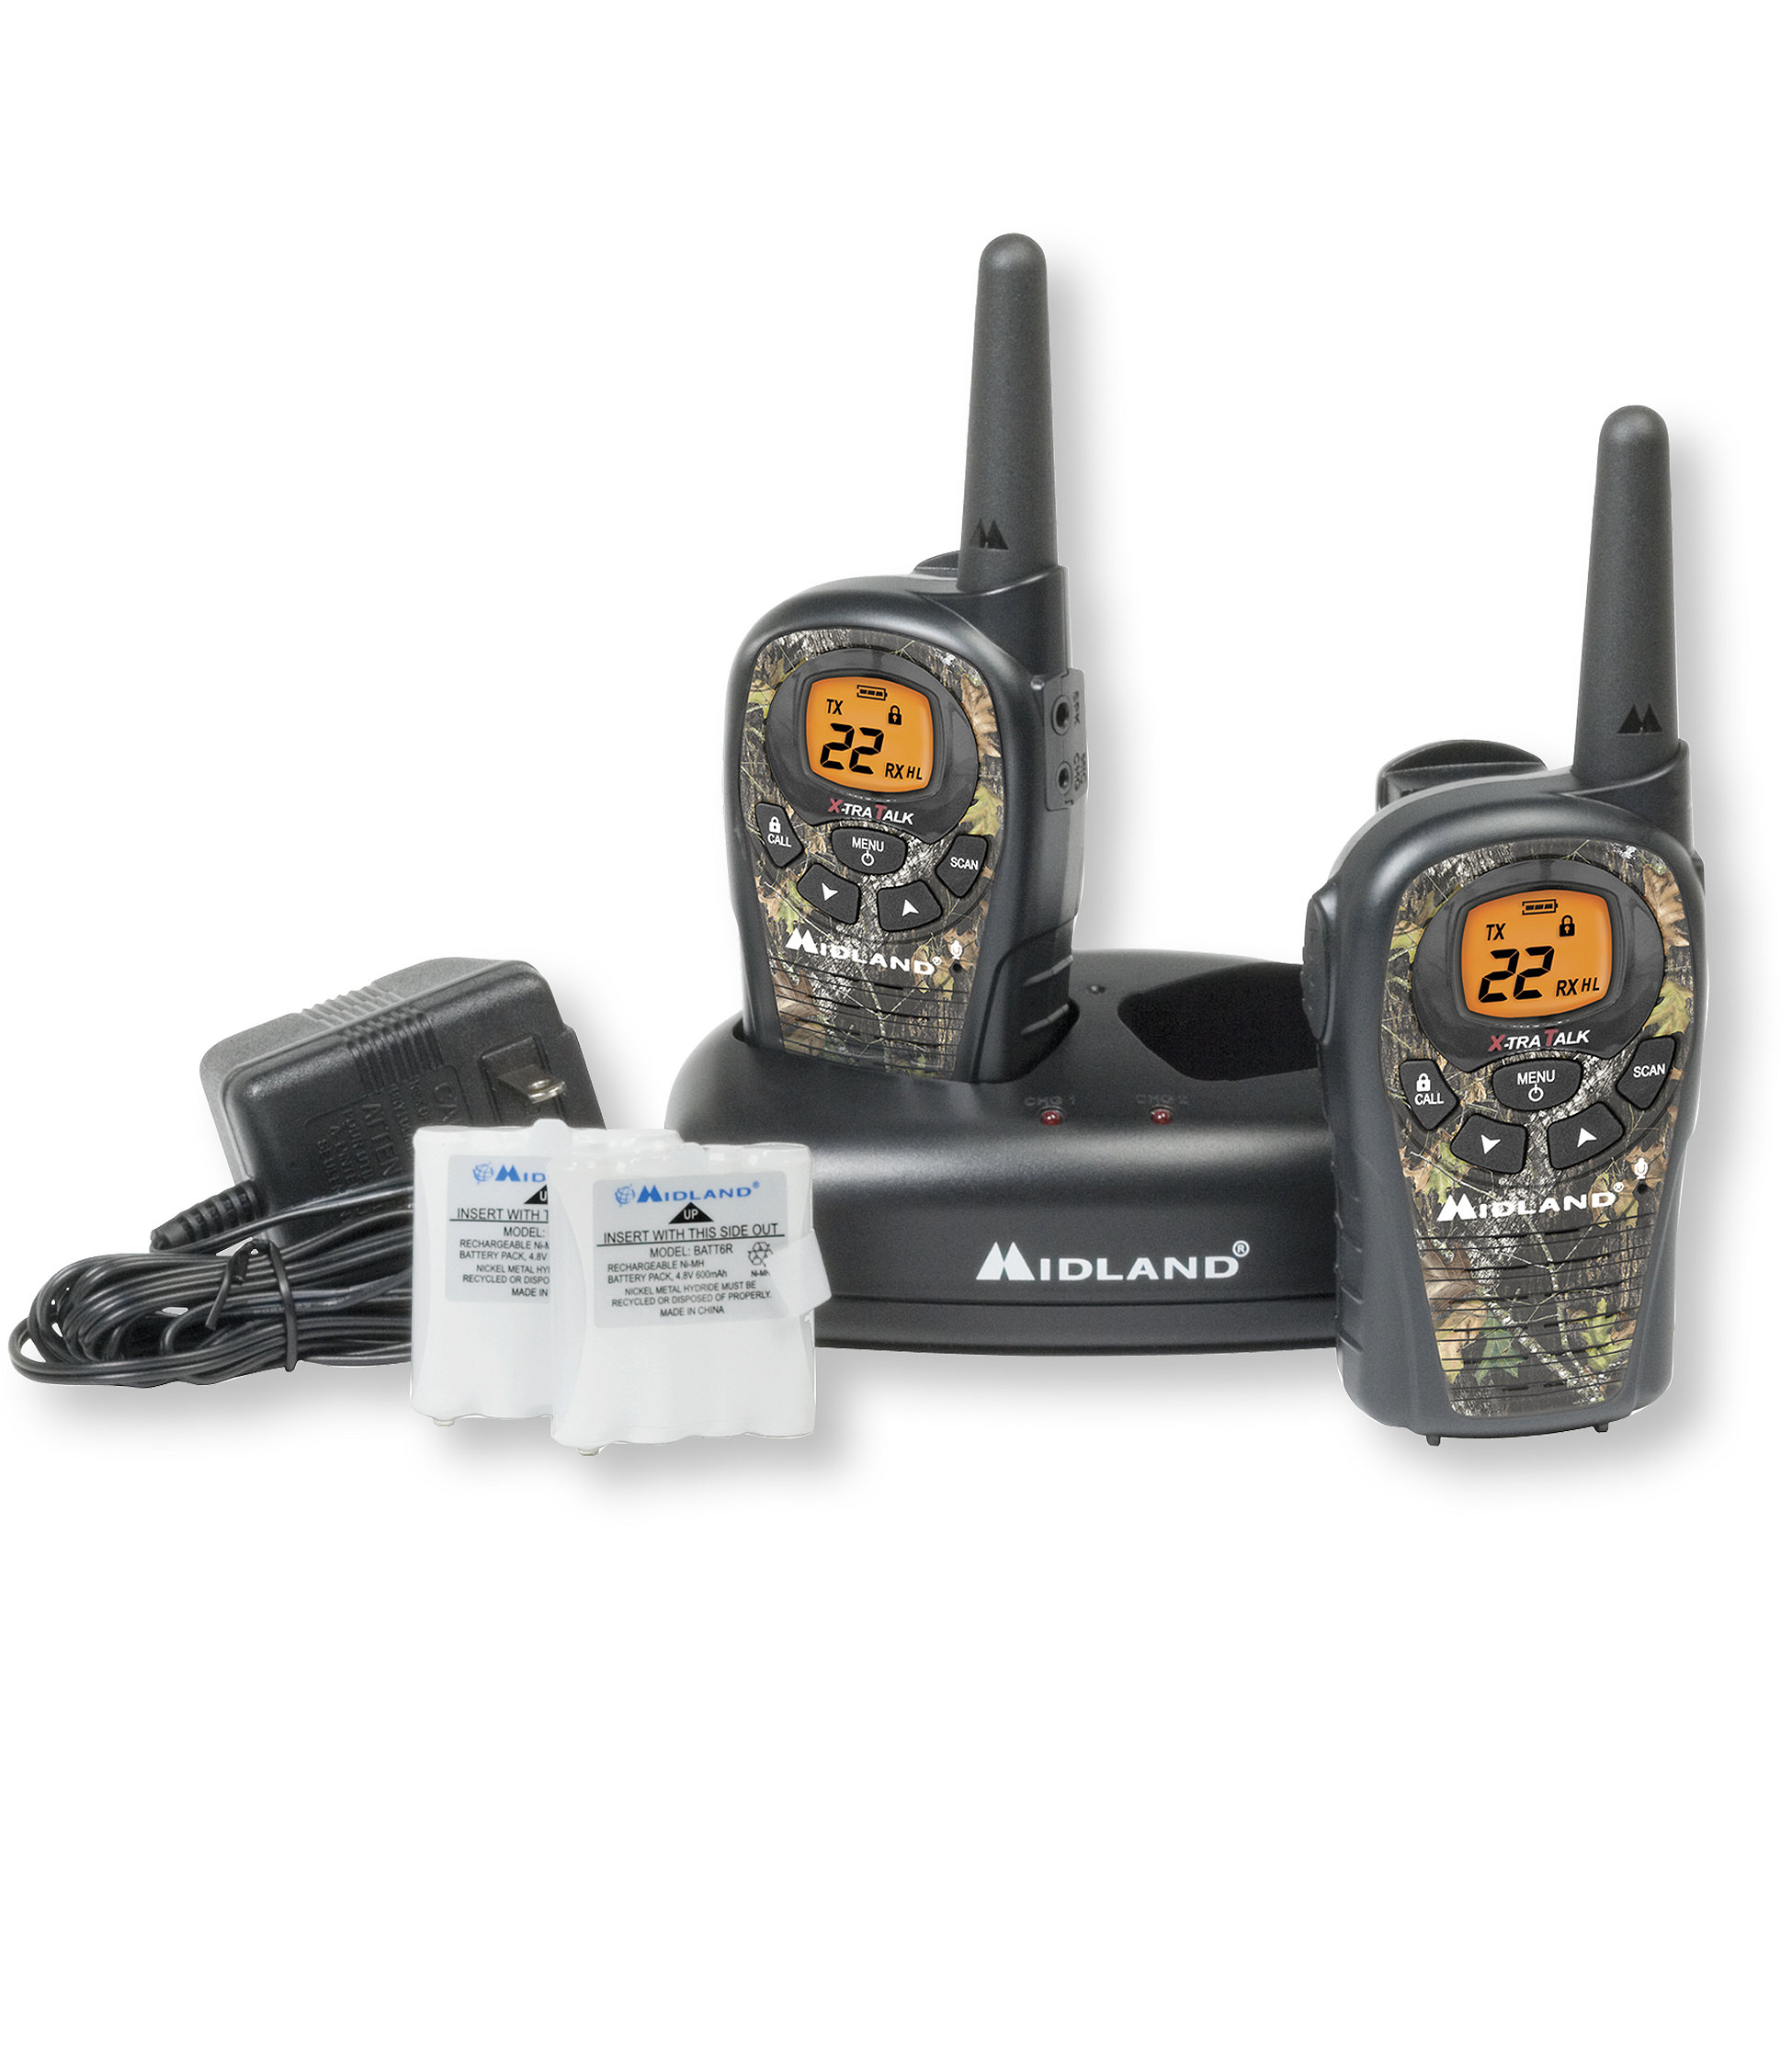 Midland LXT385VP3 FRS/GMRS 2-Way Radios